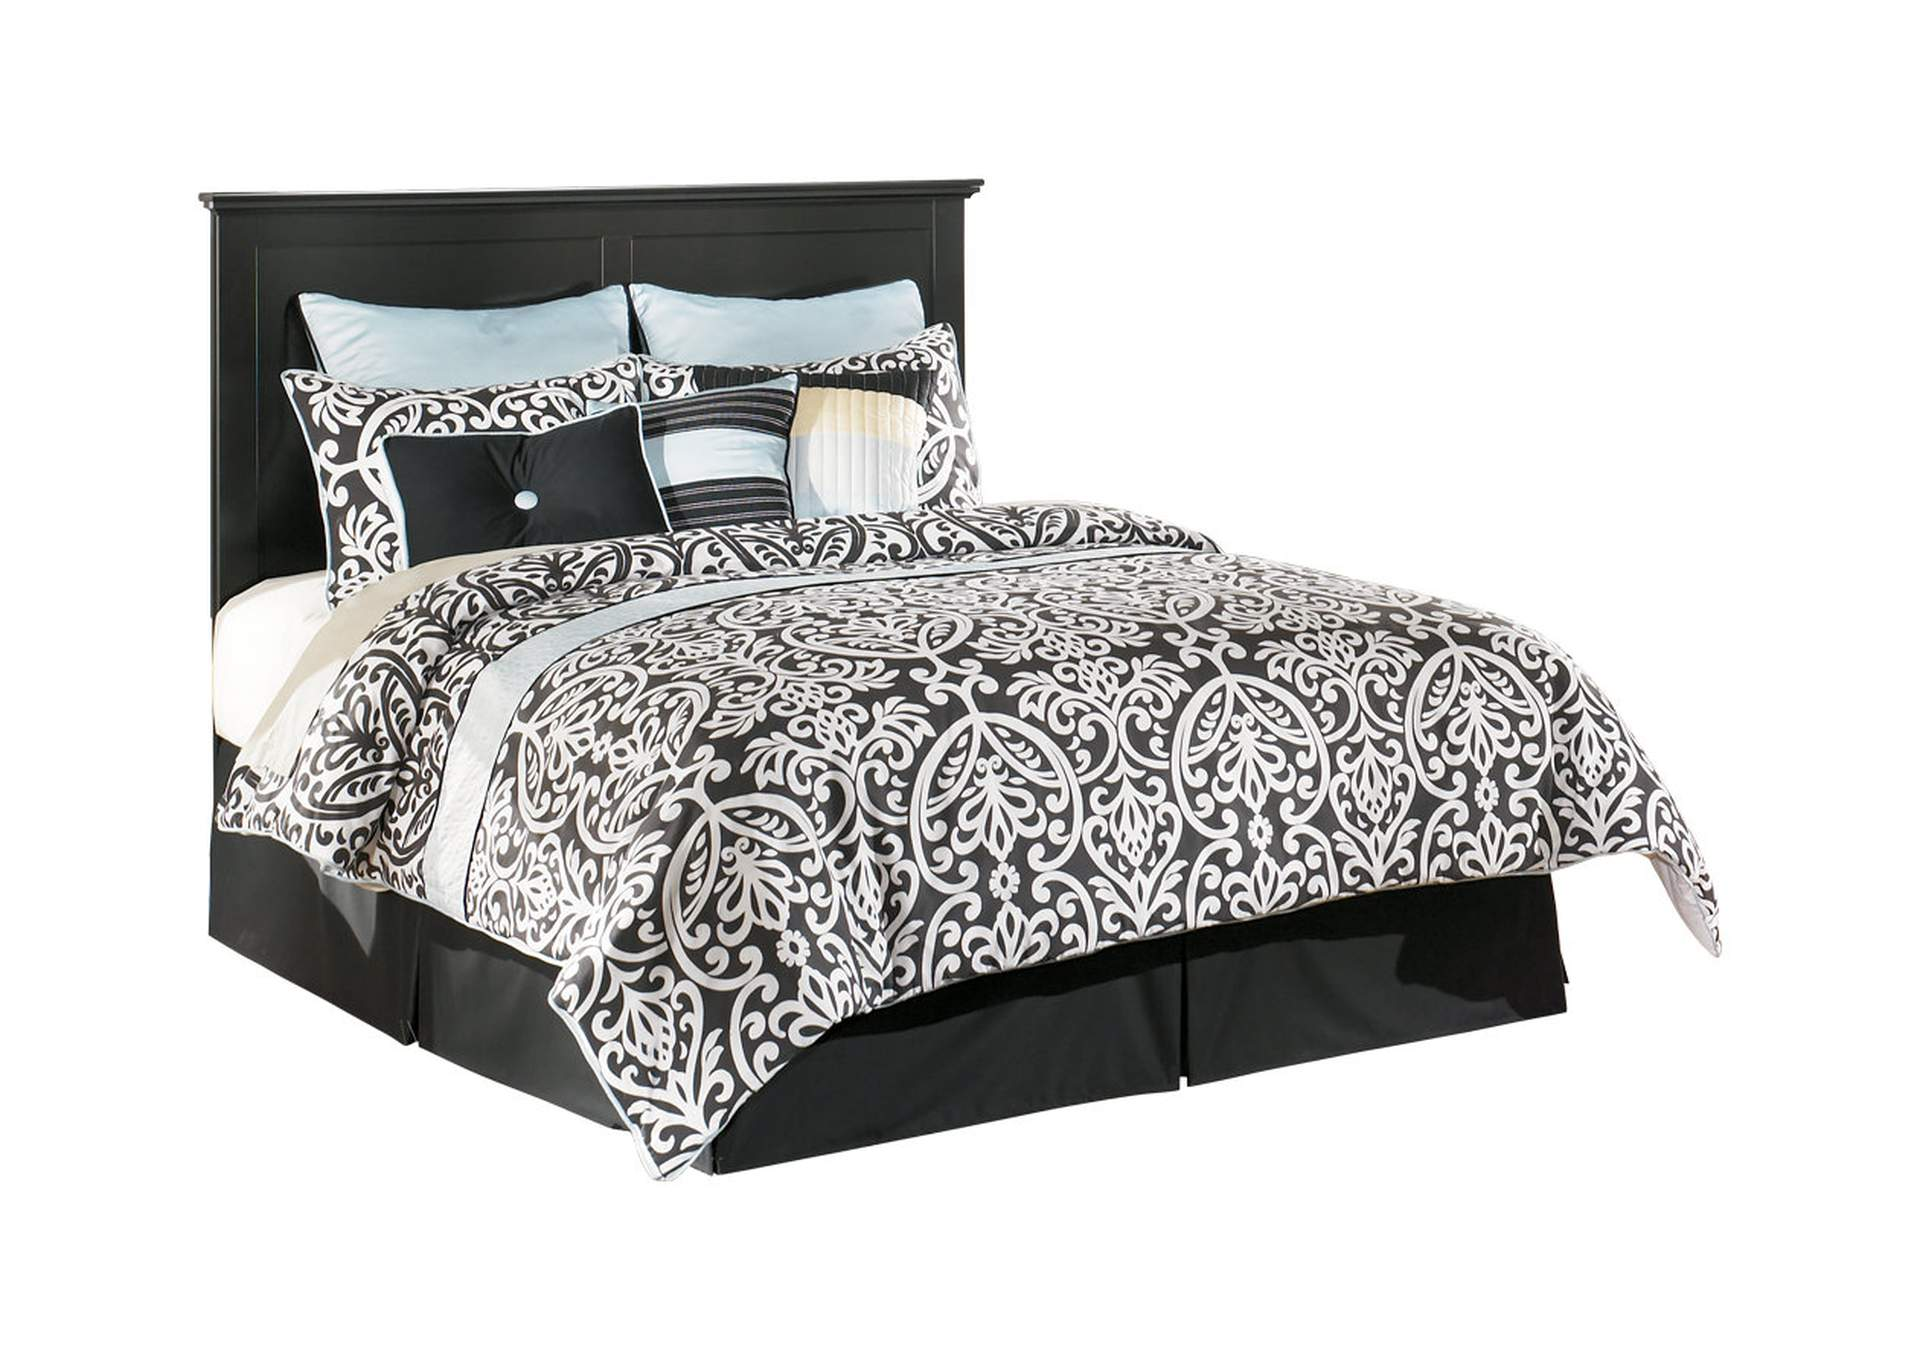 Maribel Queen/Full Panel Headboard,Signature Design By Ashley